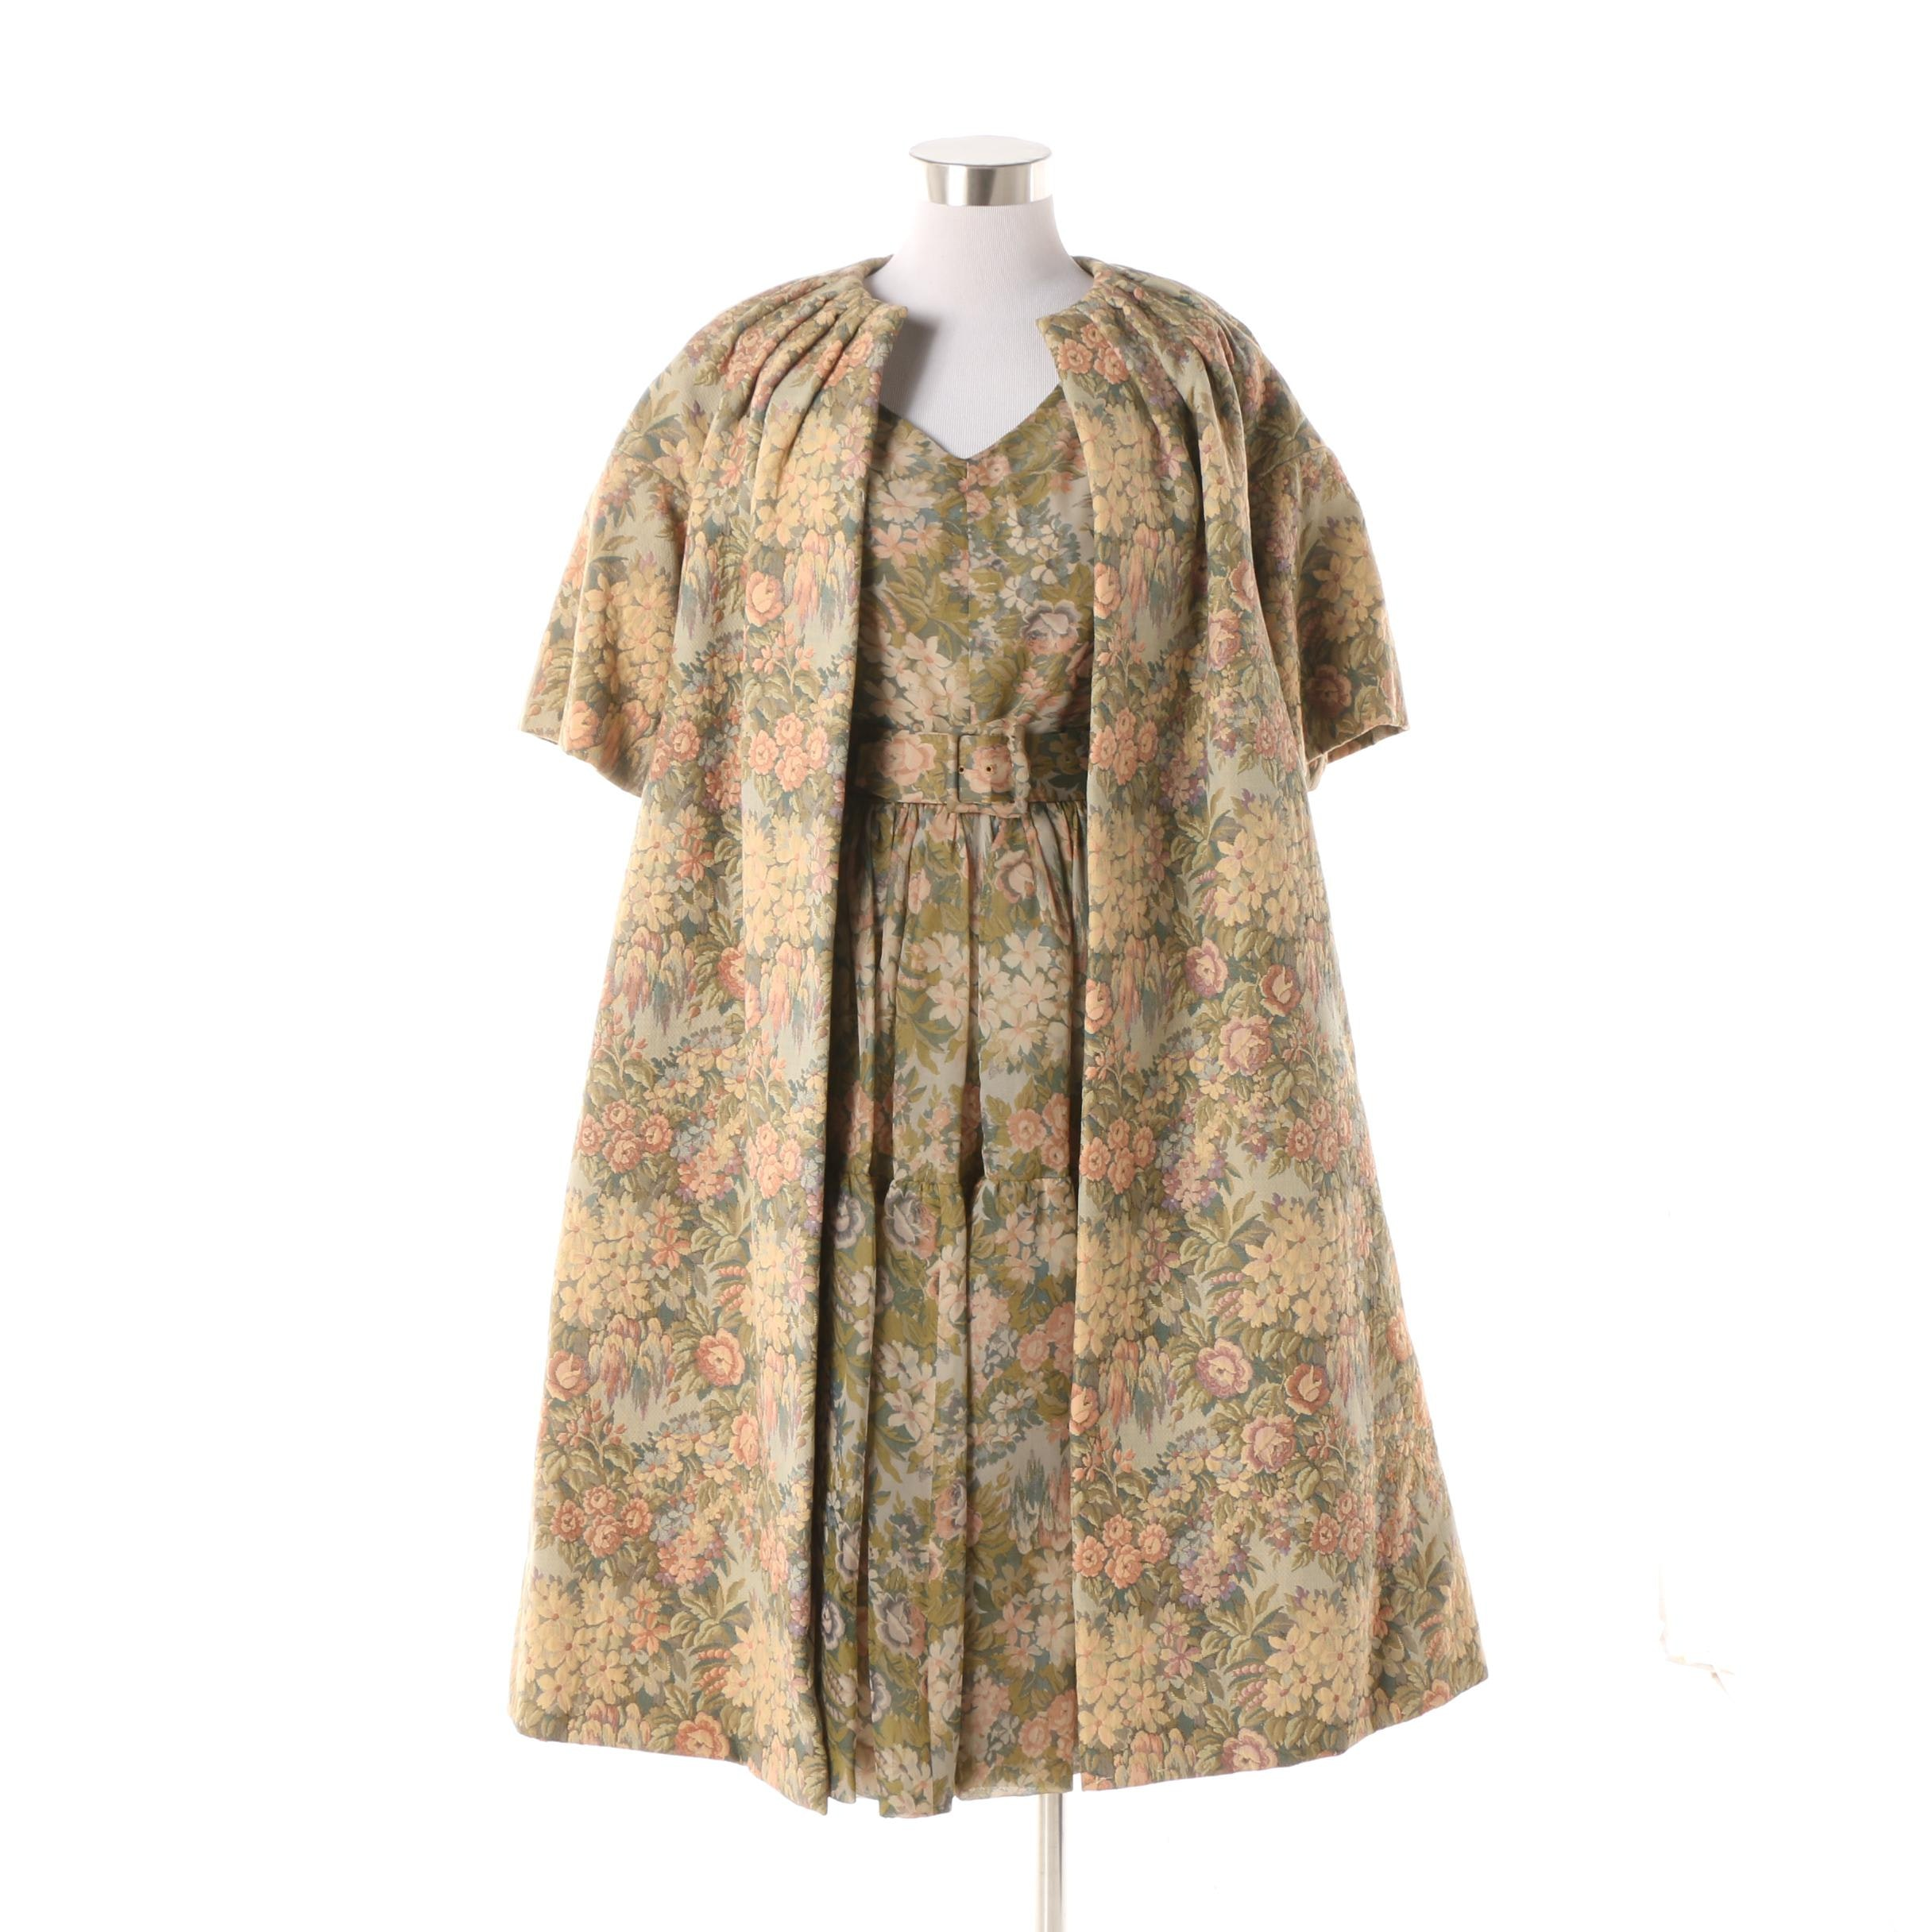 1960s Saks Fifth Avenue Floral Sleeveless Dress with Brocade Swing Overcoat